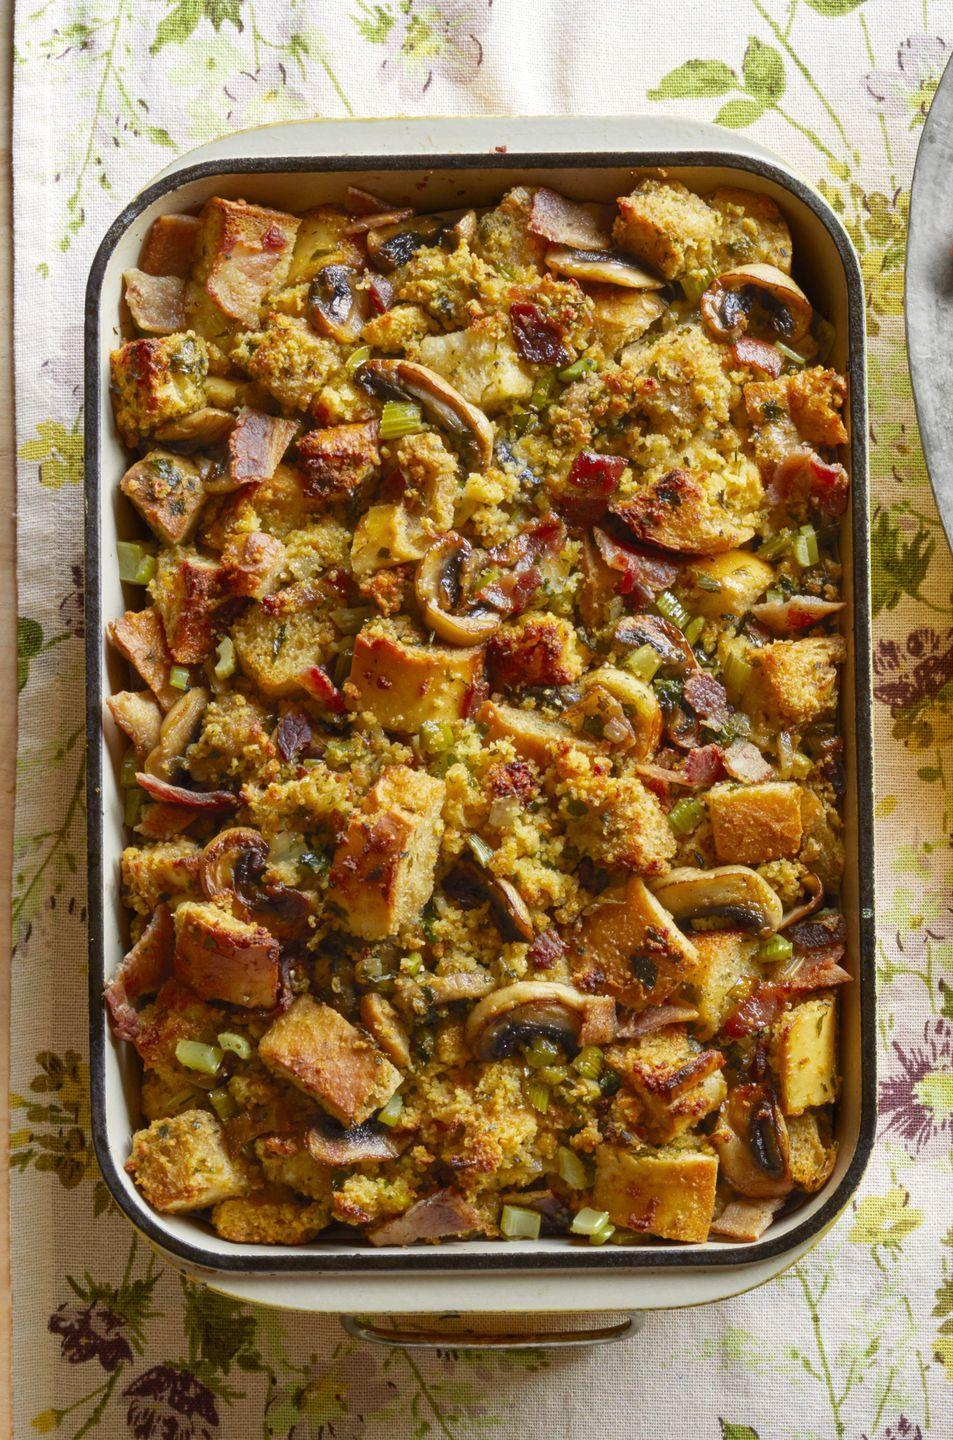 "<p>This cornbread dressing is so good that you'll want to make it year-round. </p><p><strong><a href=""https://www.thepioneerwoman.com/food-cooking/recipes/a33237974/cornbread-bacon-dressing-with-mushrooms-recipe/"" rel=""nofollow noopener"" target=""_blank"" data-ylk=""slk:Get the recipe."" class=""link rapid-noclick-resp"">Get the recipe.</a></strong></p><p><a class=""link rapid-noclick-resp"" href=""https://go.redirectingat.com?id=74968X1596630&url=https%3A%2F%2Fwww.walmart.com%2Fbrowse%2Fhome%2Fbaking-dishes%2F4044_623679_8455465_2321543%3Ffacet%3Dbrand%253AThe%2BPioneer%2BWoman&sref=https%3A%2F%2Fwww.thepioneerwoman.com%2Ffood-cooking%2Fmeals-menus%2Fg33251890%2Fbest-thanksgiving-sides%2F"" rel=""nofollow noopener"" target=""_blank"" data-ylk=""slk:SHOP BAKING DISHES"">SHOP BAKING DISHES</a></p>"